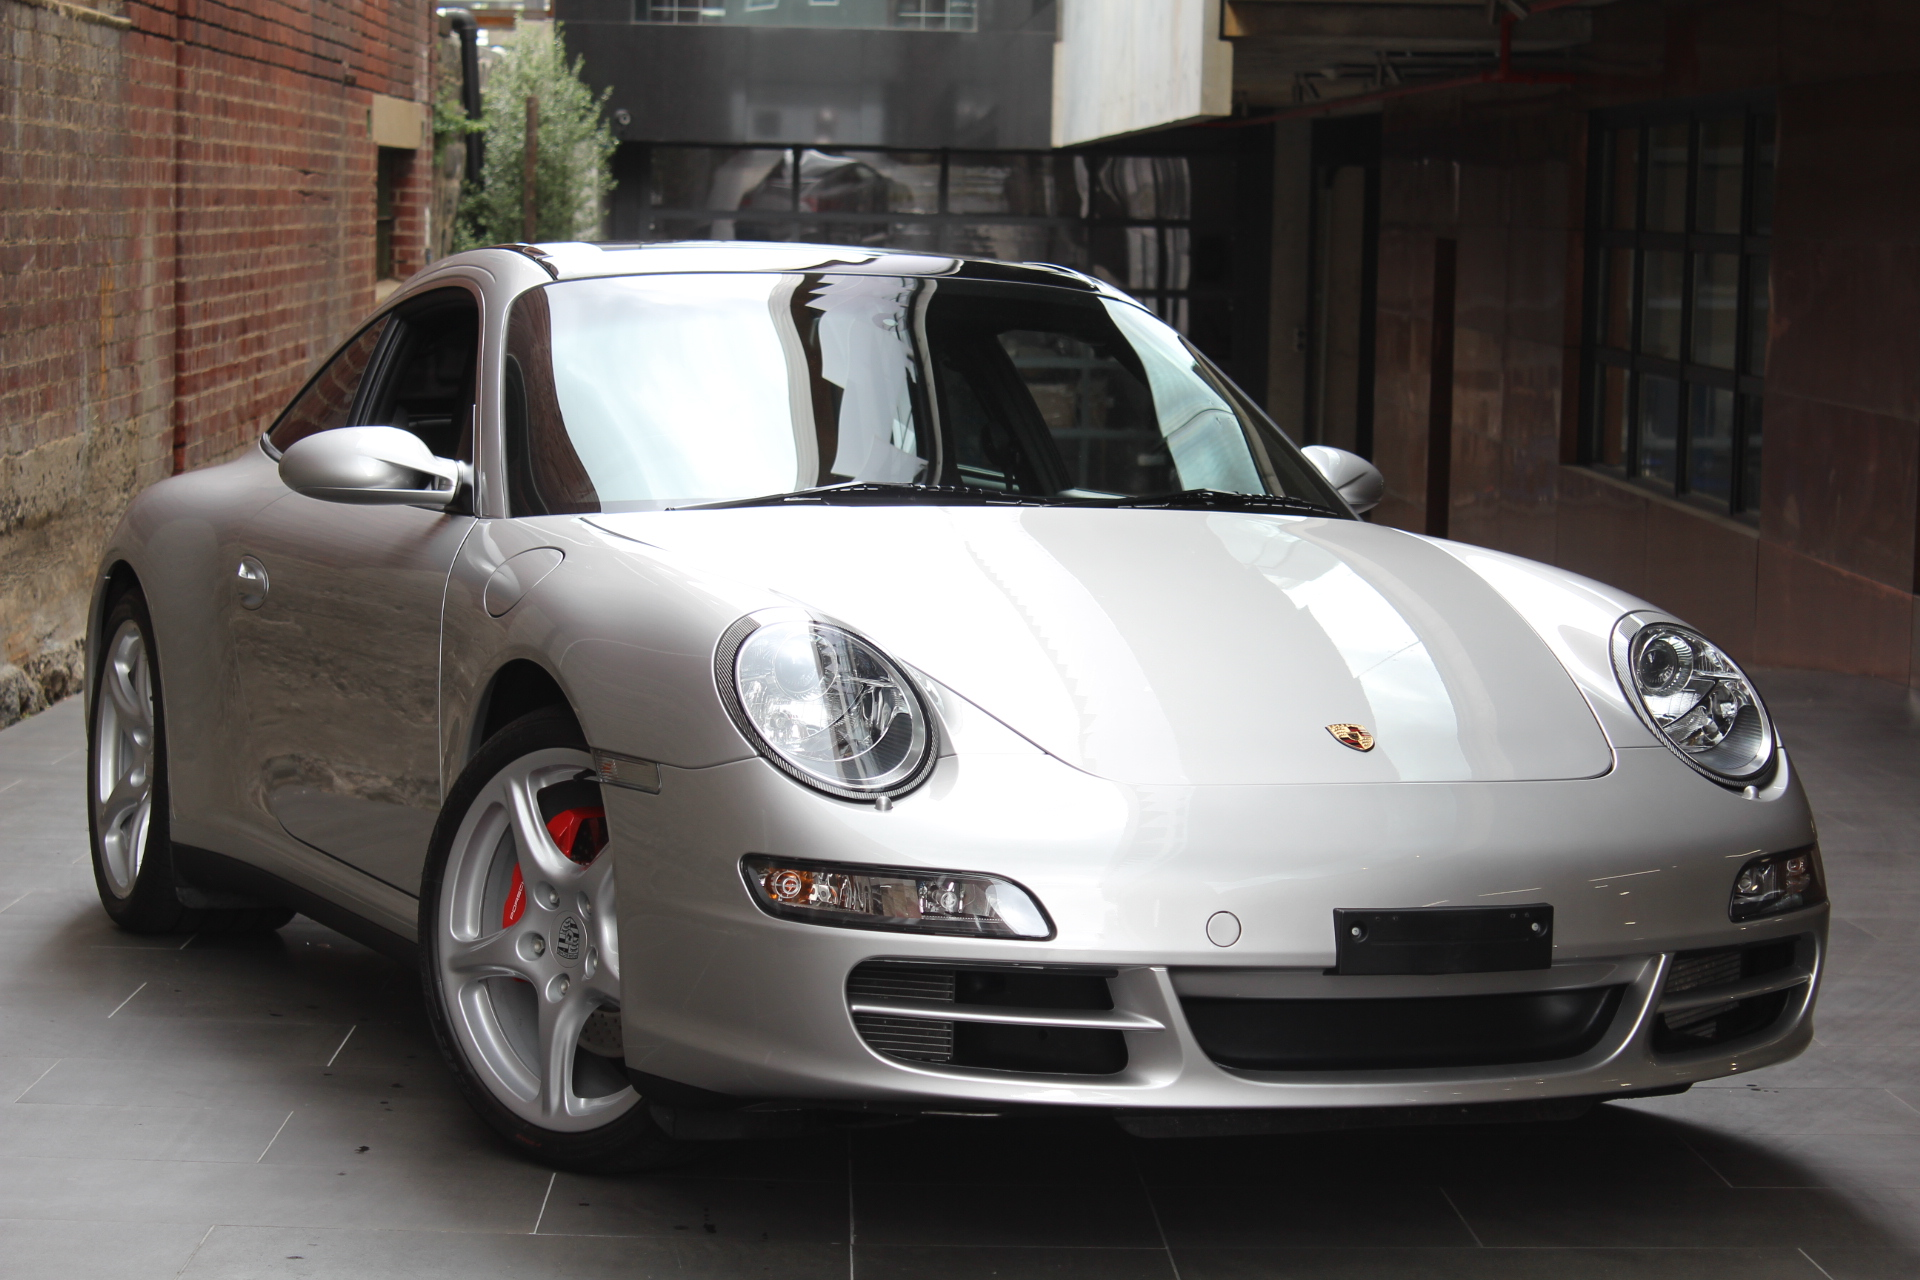 2008 PORSCHE 911 997 MY08- sold in Australia